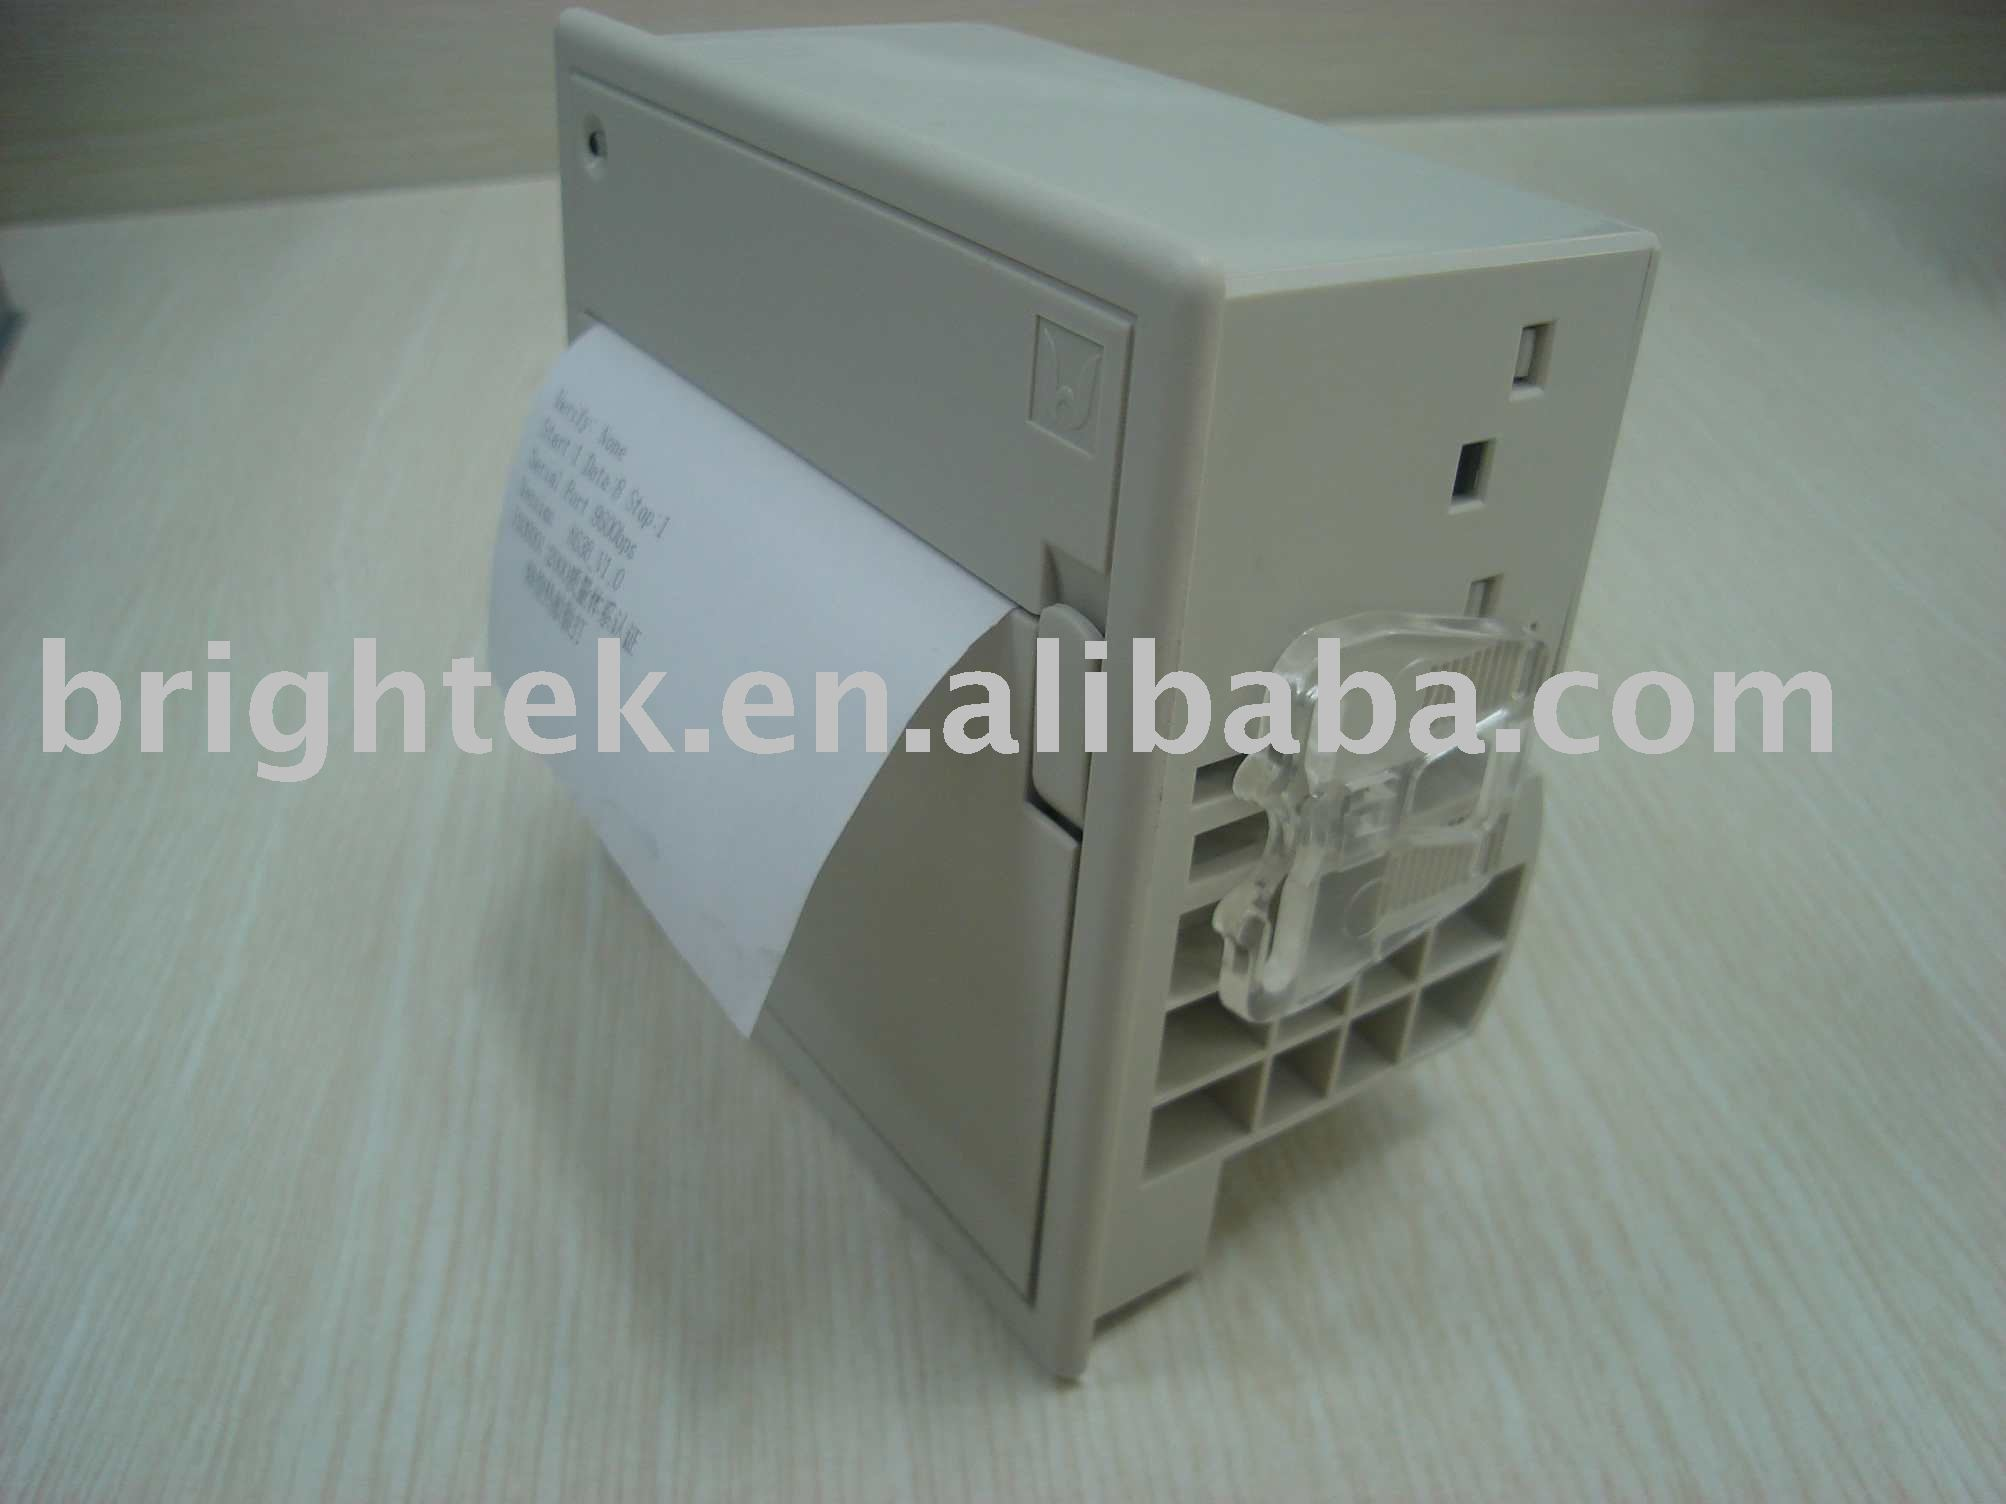 Thermal printer A9 DC3.5V-9V , DC12V-24V , DC5V ,15W